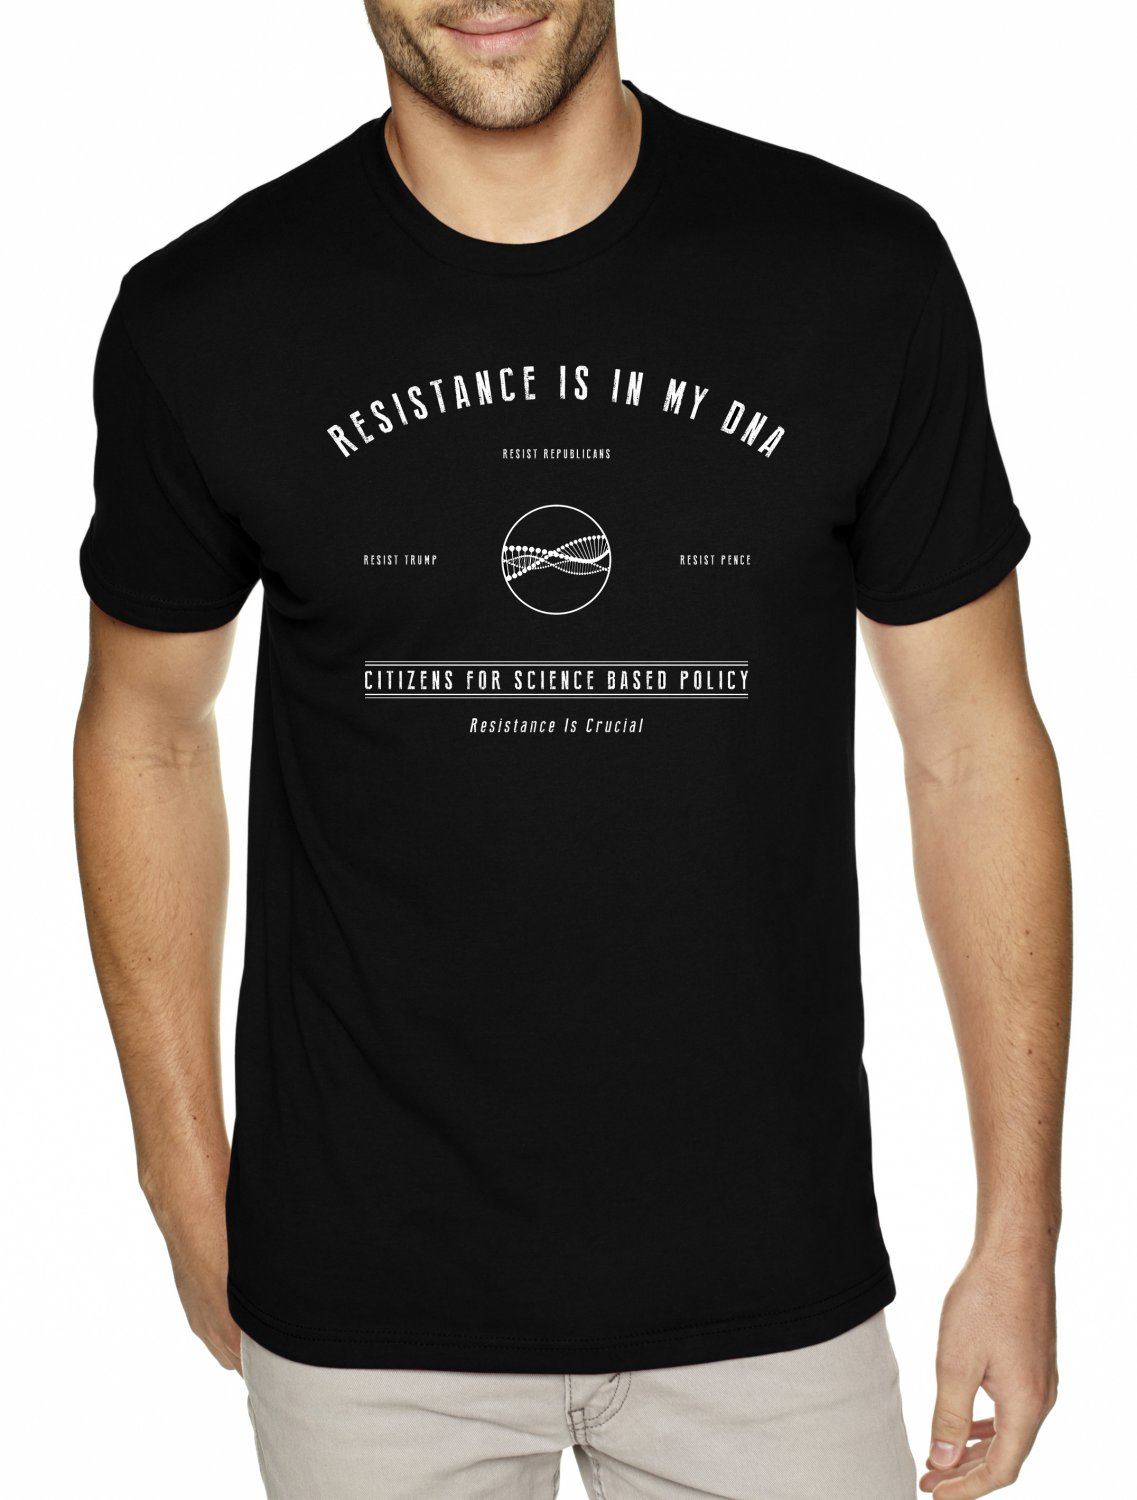 RESISTANCE IS IN MY DNA - Citizens For Science Based Policy - Premium Sueded Shirt SIZE XL